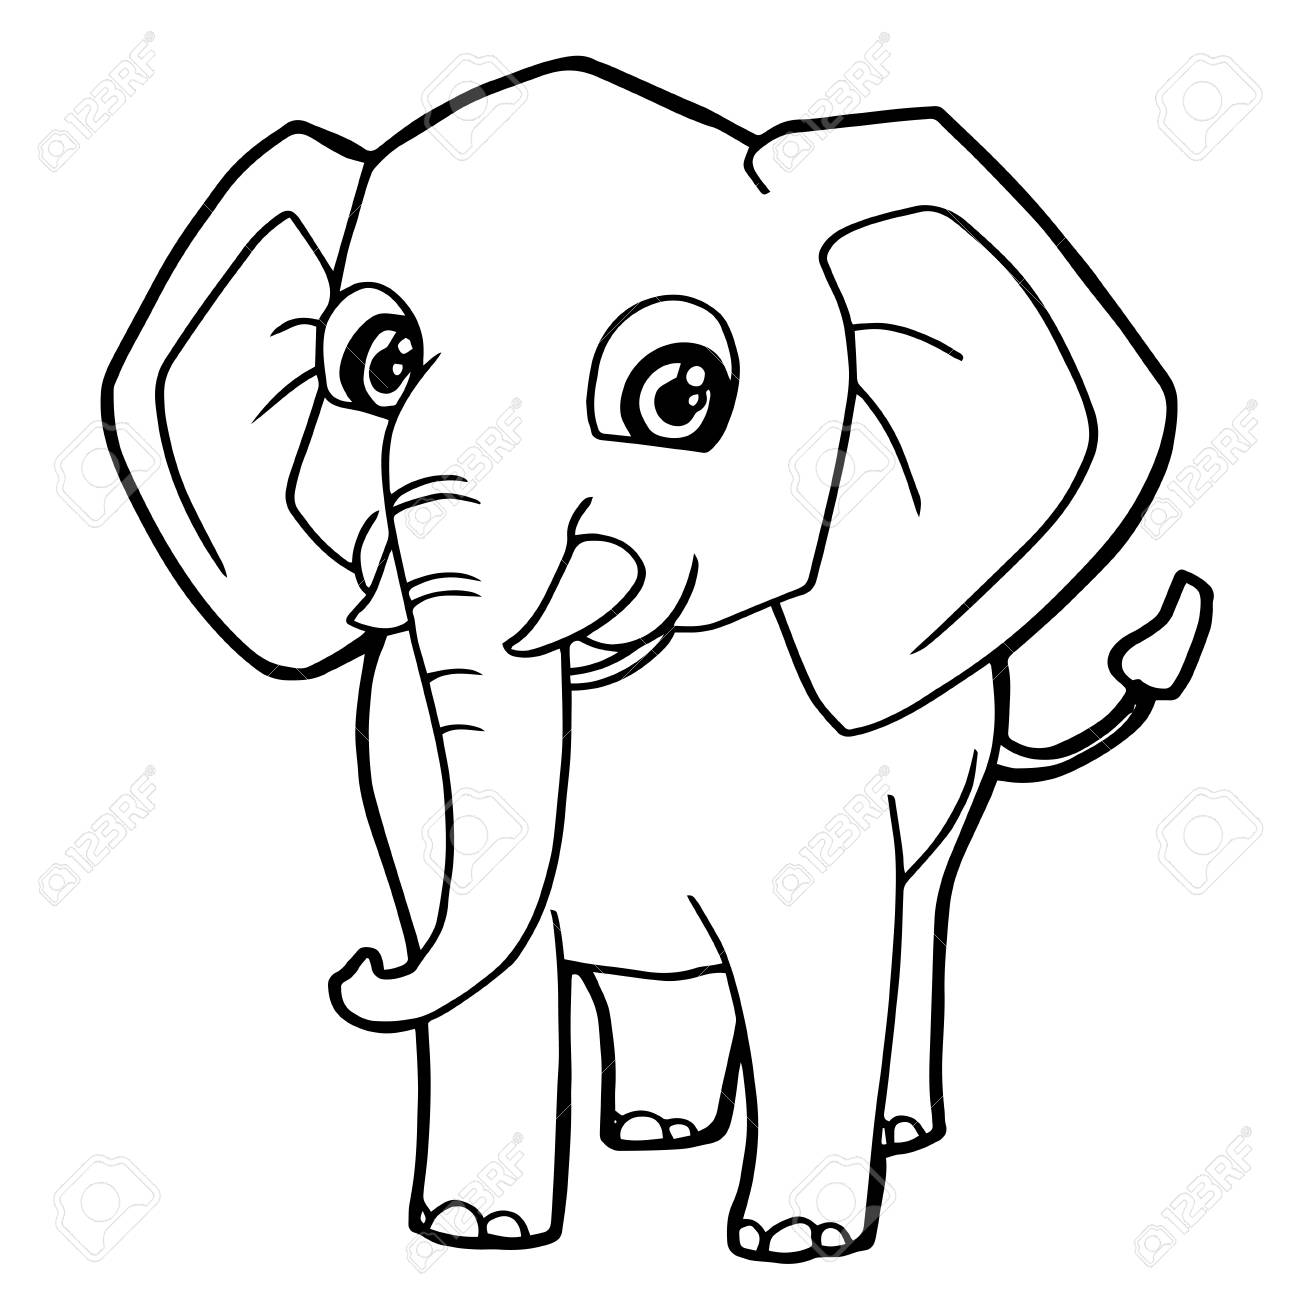 Cartoon Cute Elephant Coloring Page Vector Illustration Royalty Free ...